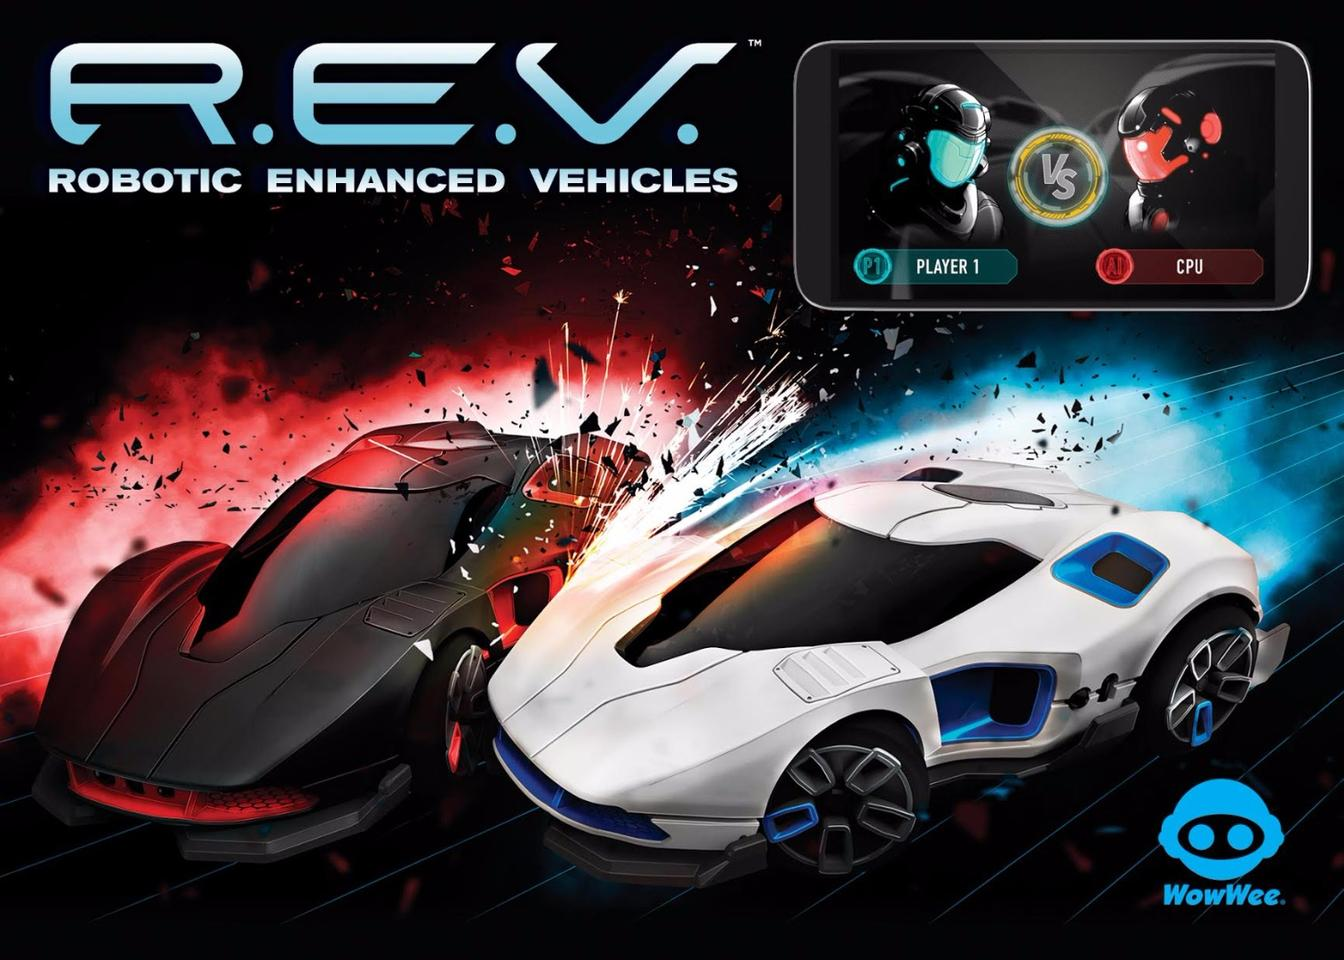 The REV starter set comes with two cars